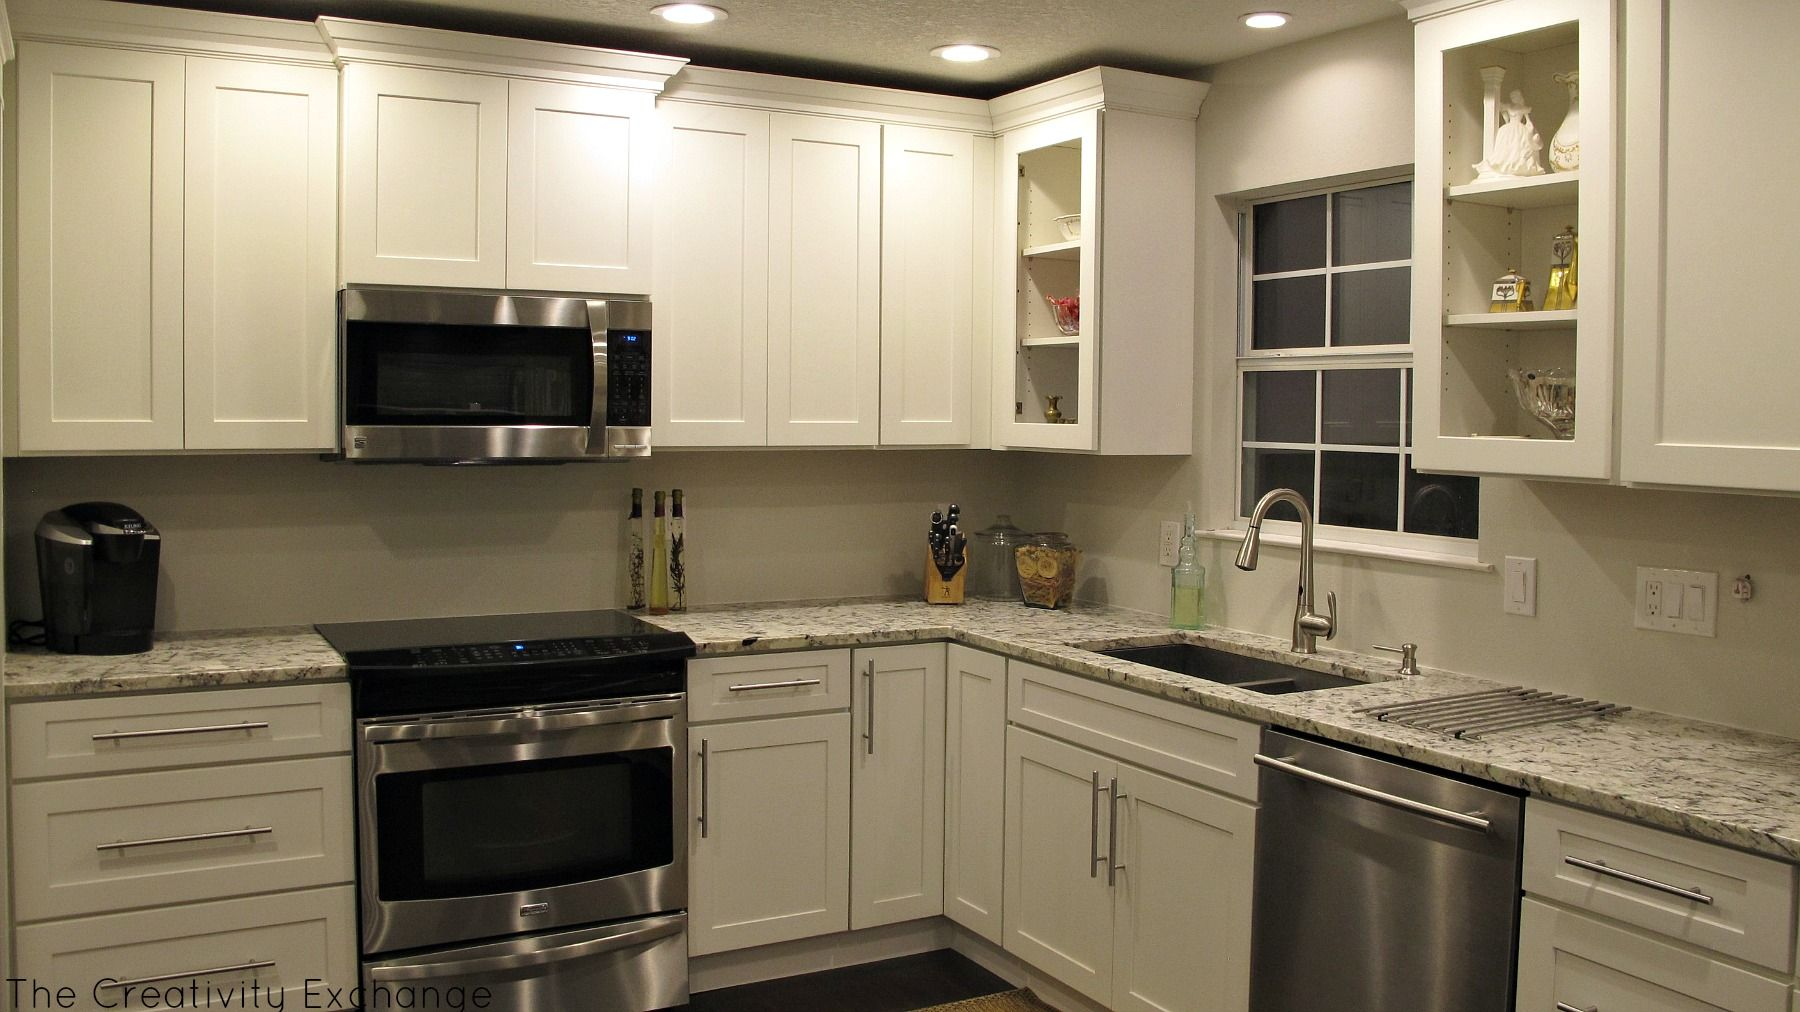 Cousin frank 39 s amazing kitchen remodel before after for Amazing small kitchens